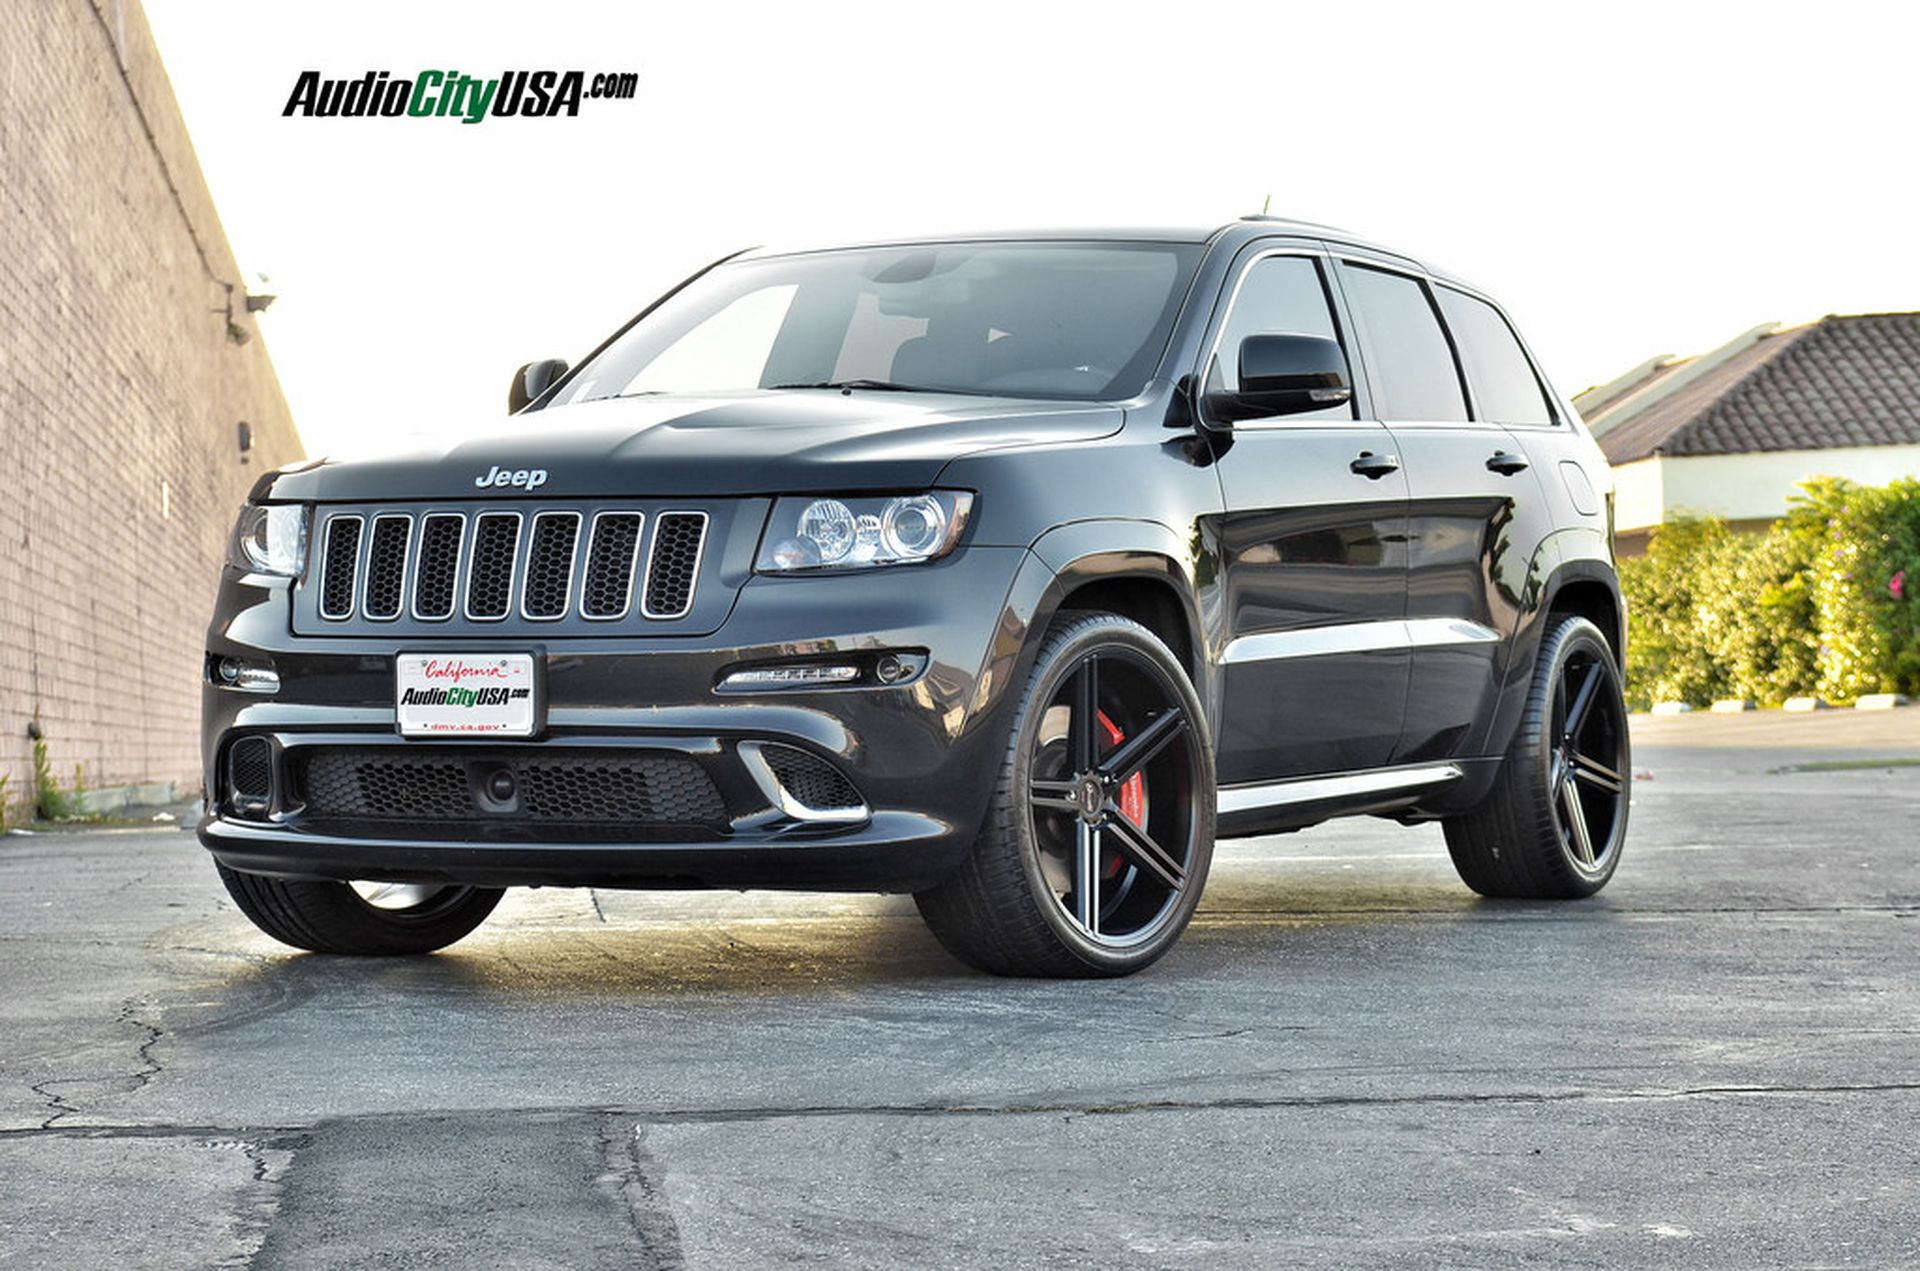 Kupit Elitnye Diski Gianelle Lucca Black Na Jeep Grand Cherokee Srt8 Jeep Grand Cherokee Jeep Grand Cherokee Srt Jeep Srt8